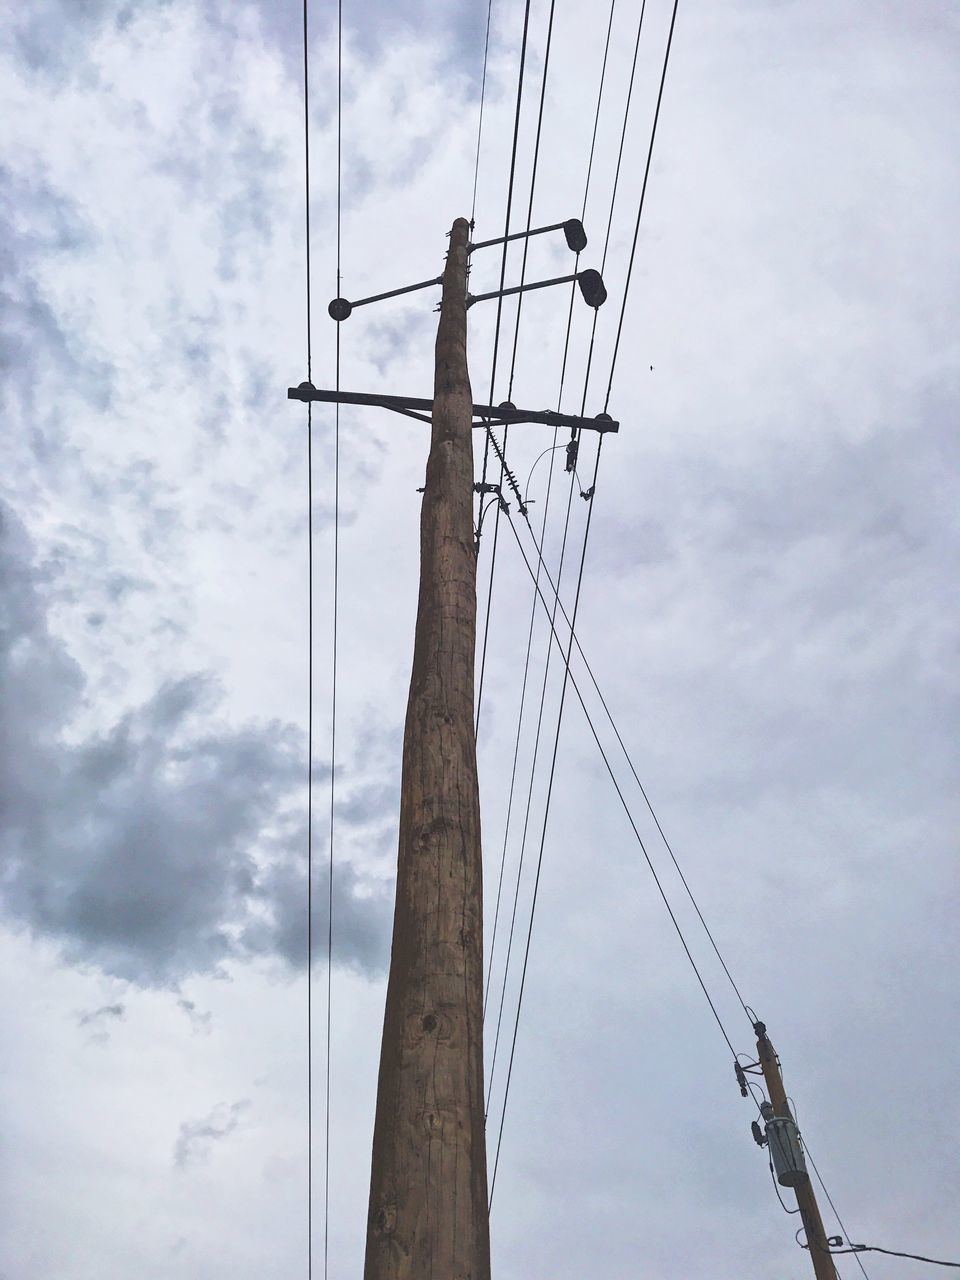 connection, cable, sky, cloud - sky, low angle view, power line, power supply, day, electricity, outdoors, fuel and power generation, technology, electricity pylon, no people, telephone line, bird, animal themes